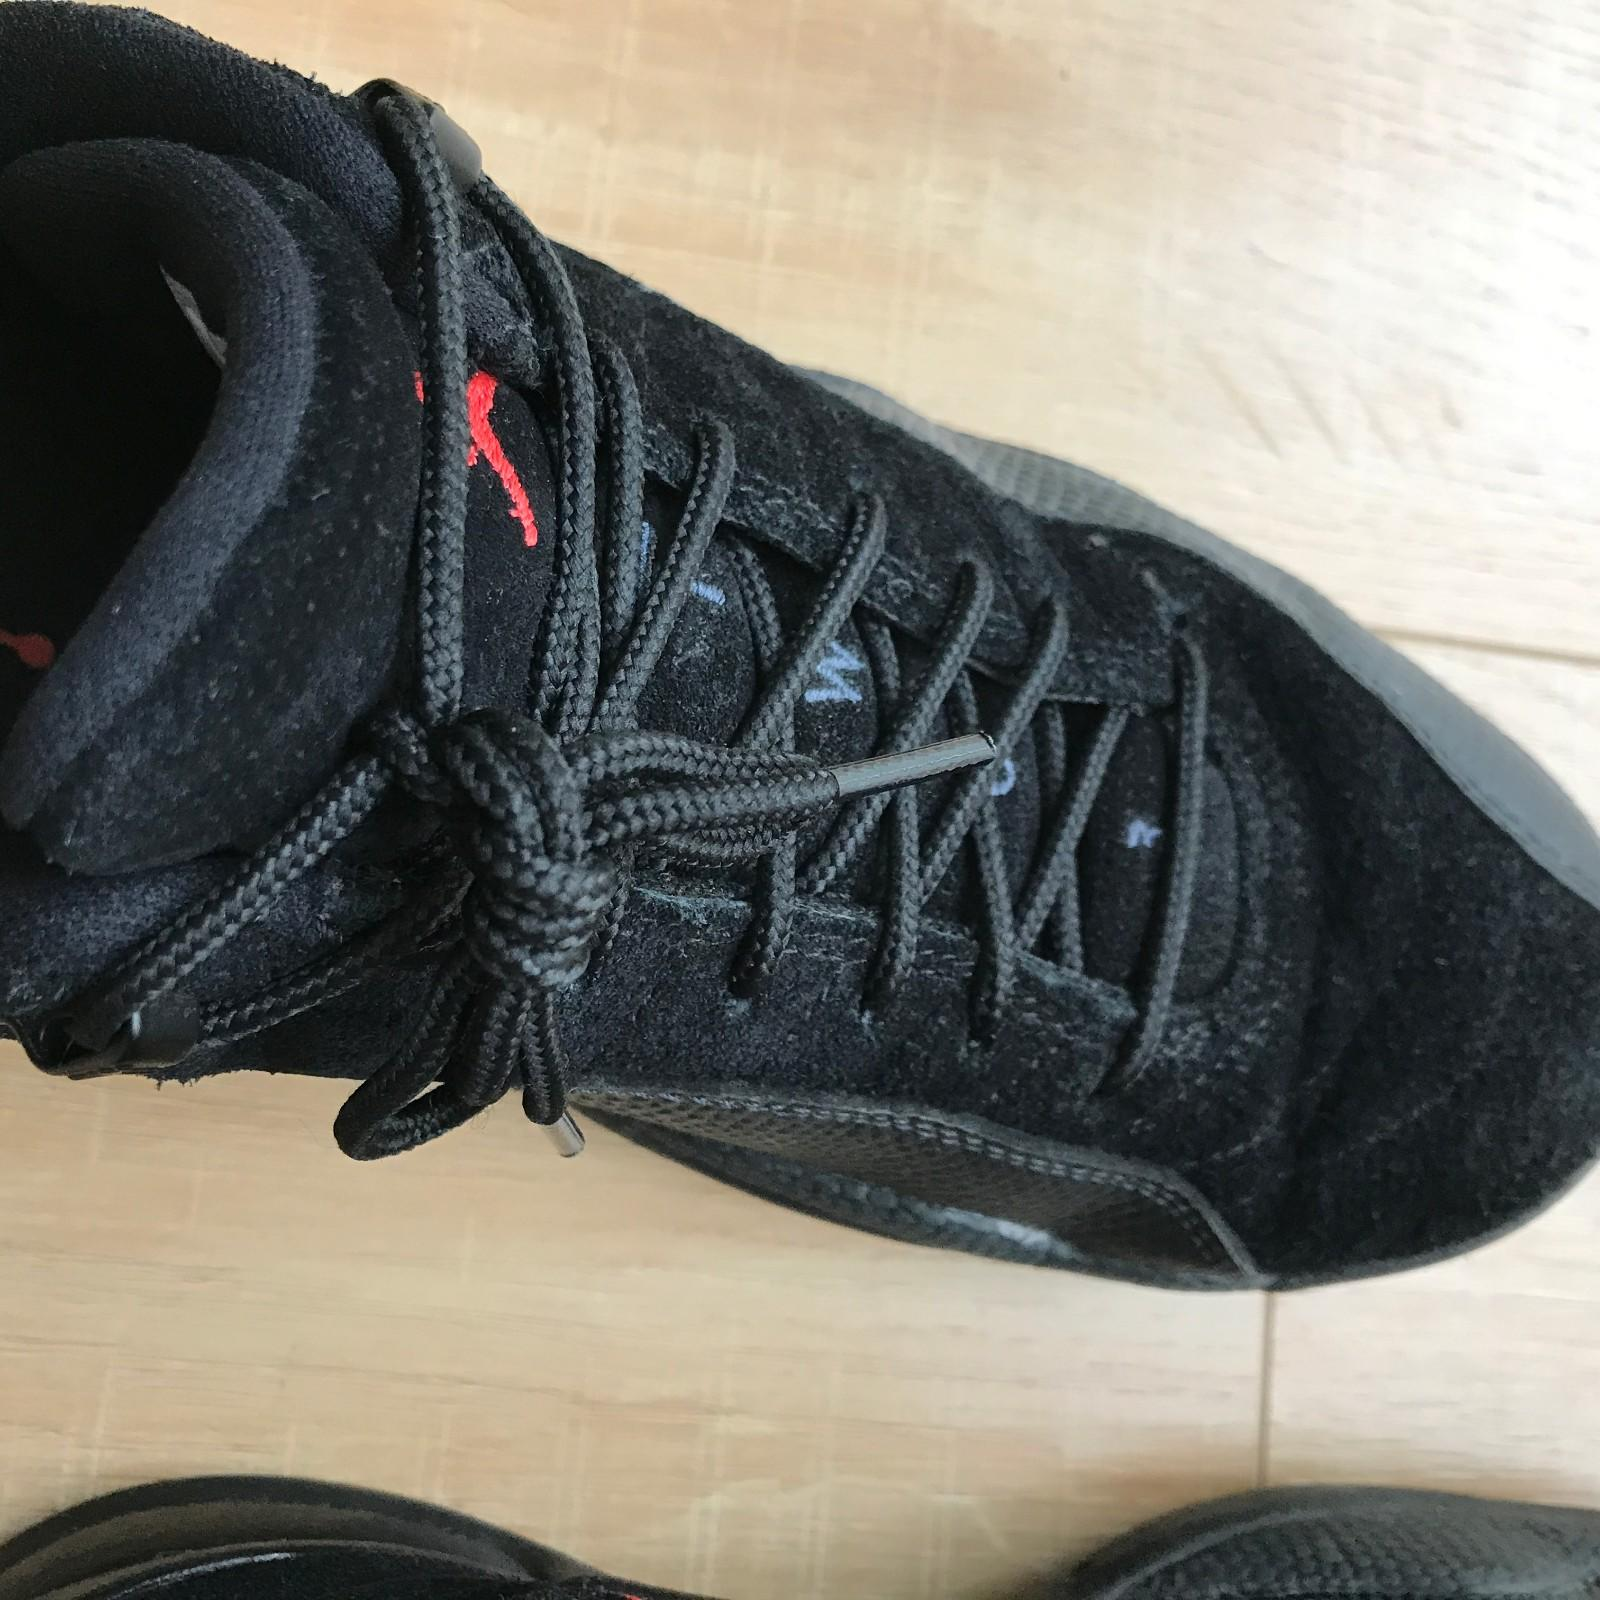 Air Jordan12 Low - Black Orange Storm